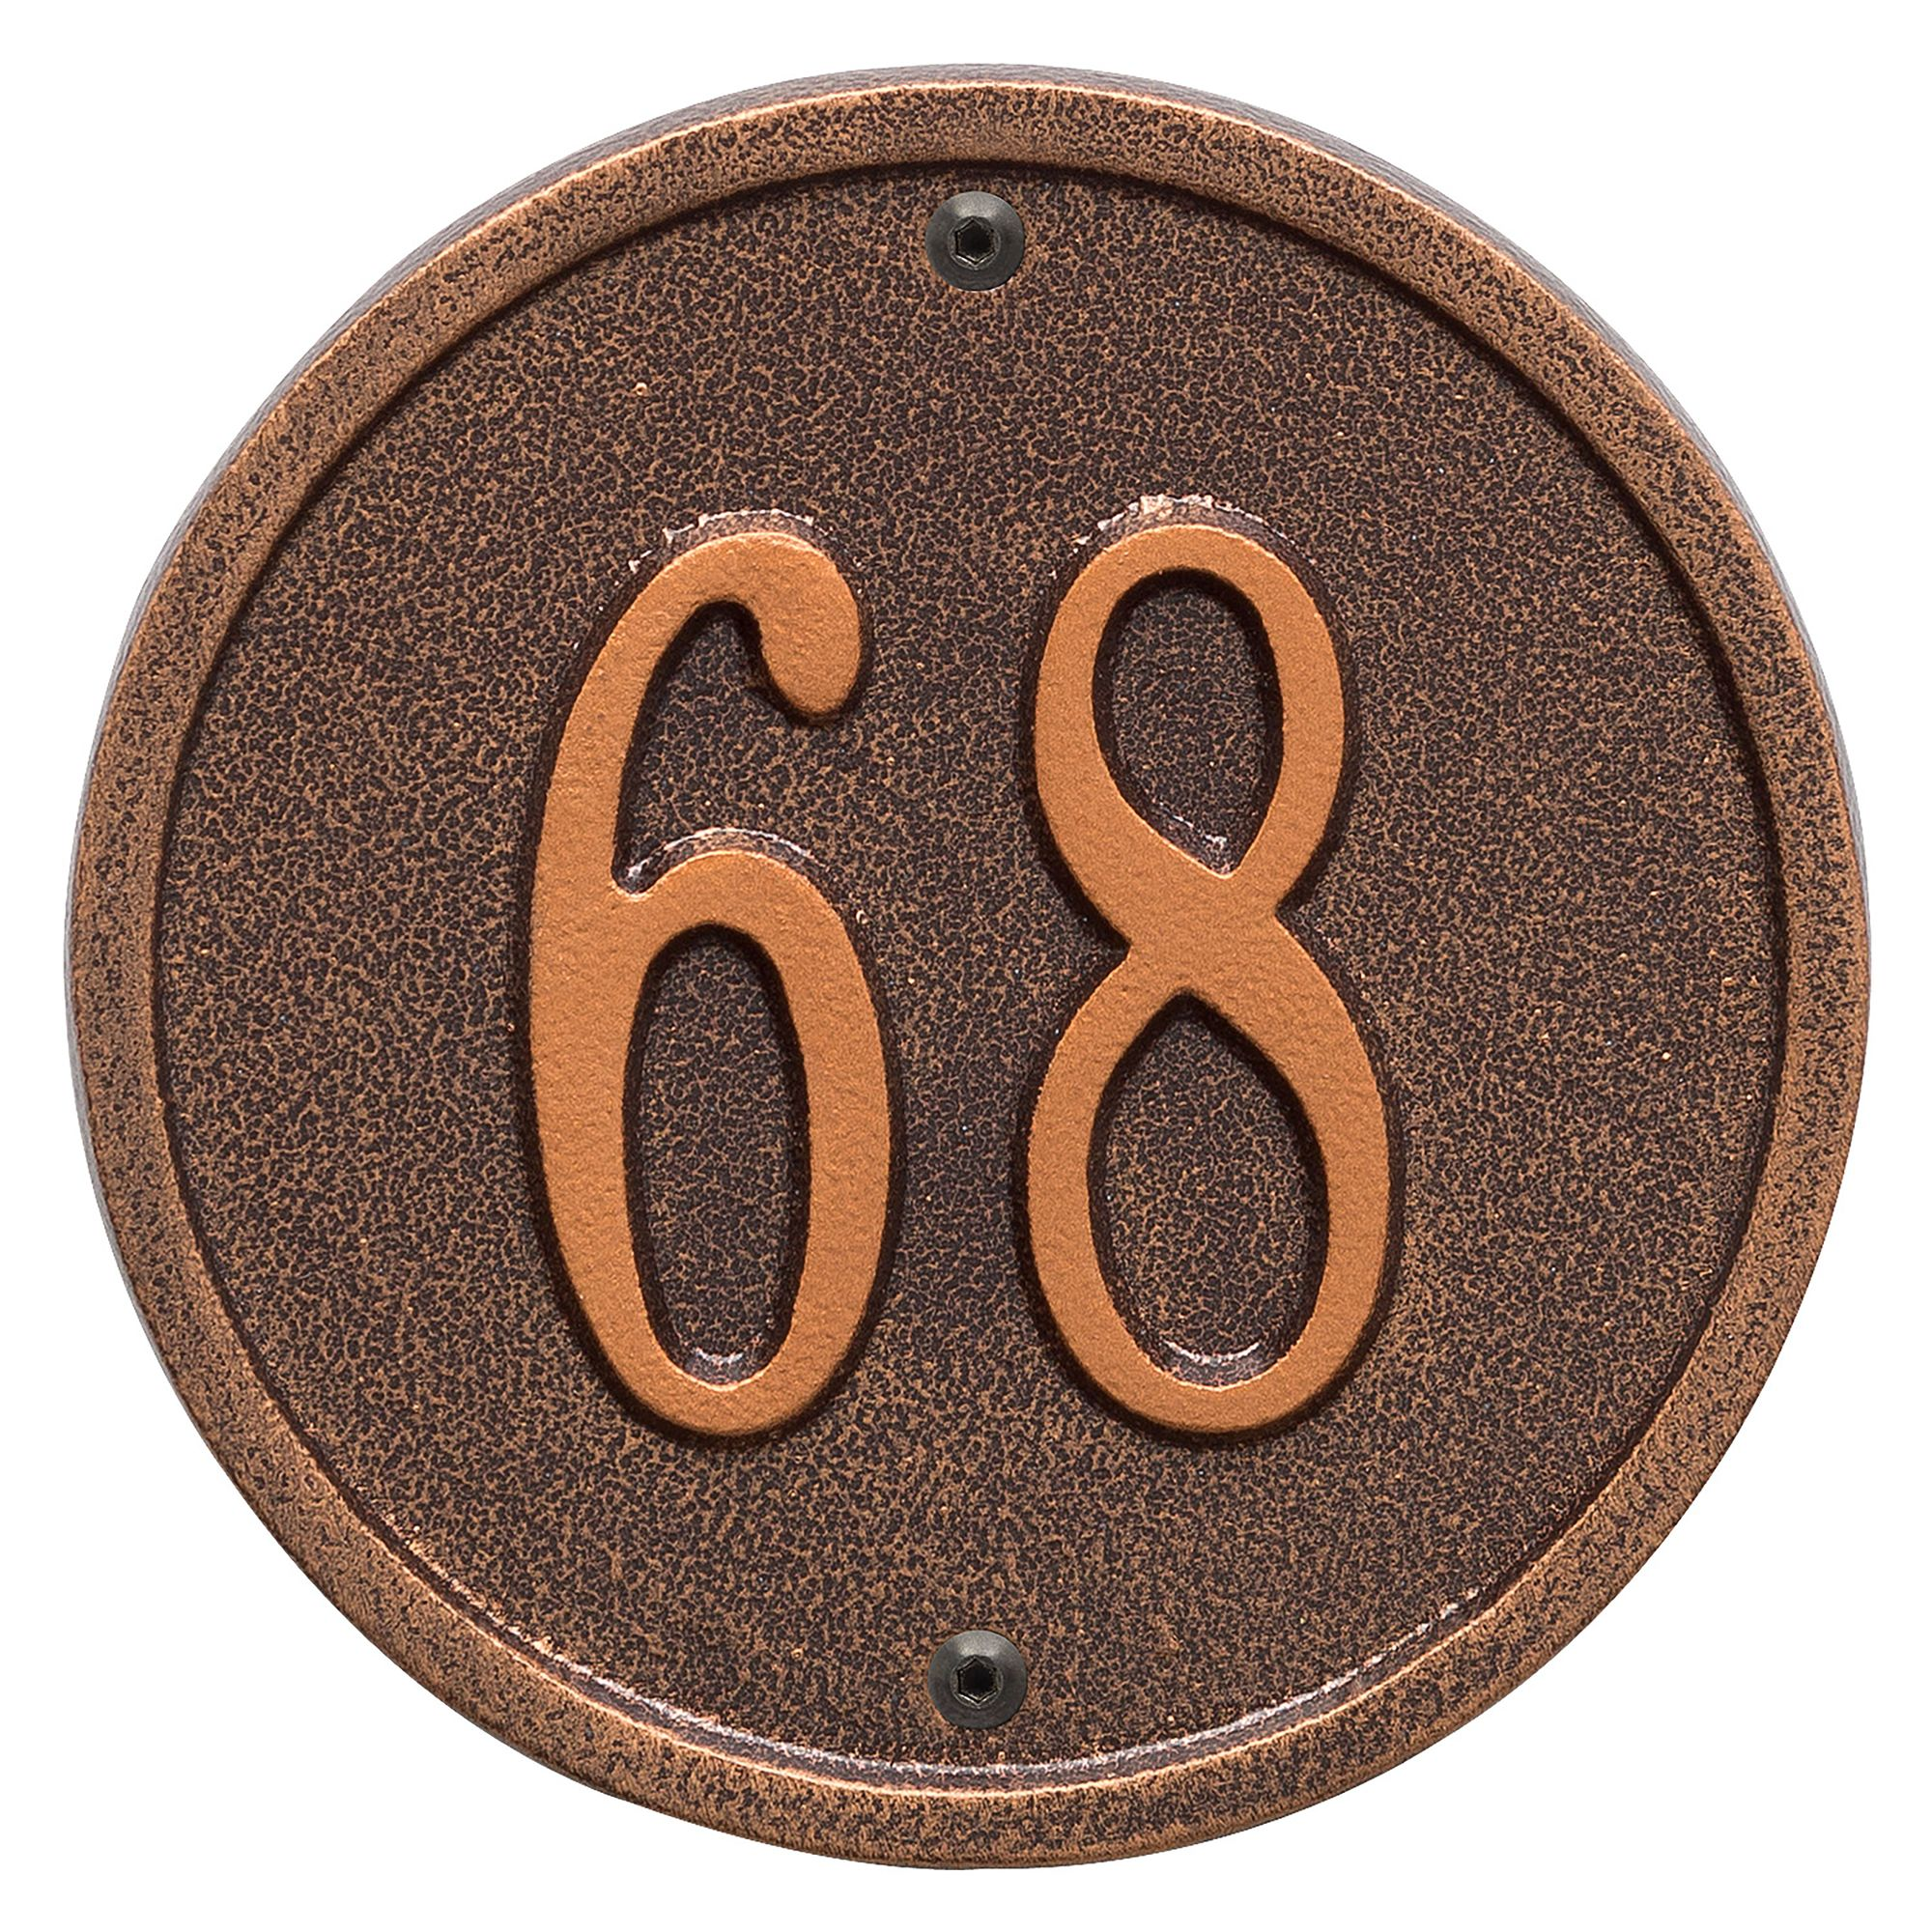 Personalized Whitehall Products 6-Inch One-Line Round Address Plaque in Antique Copper by Whitehall